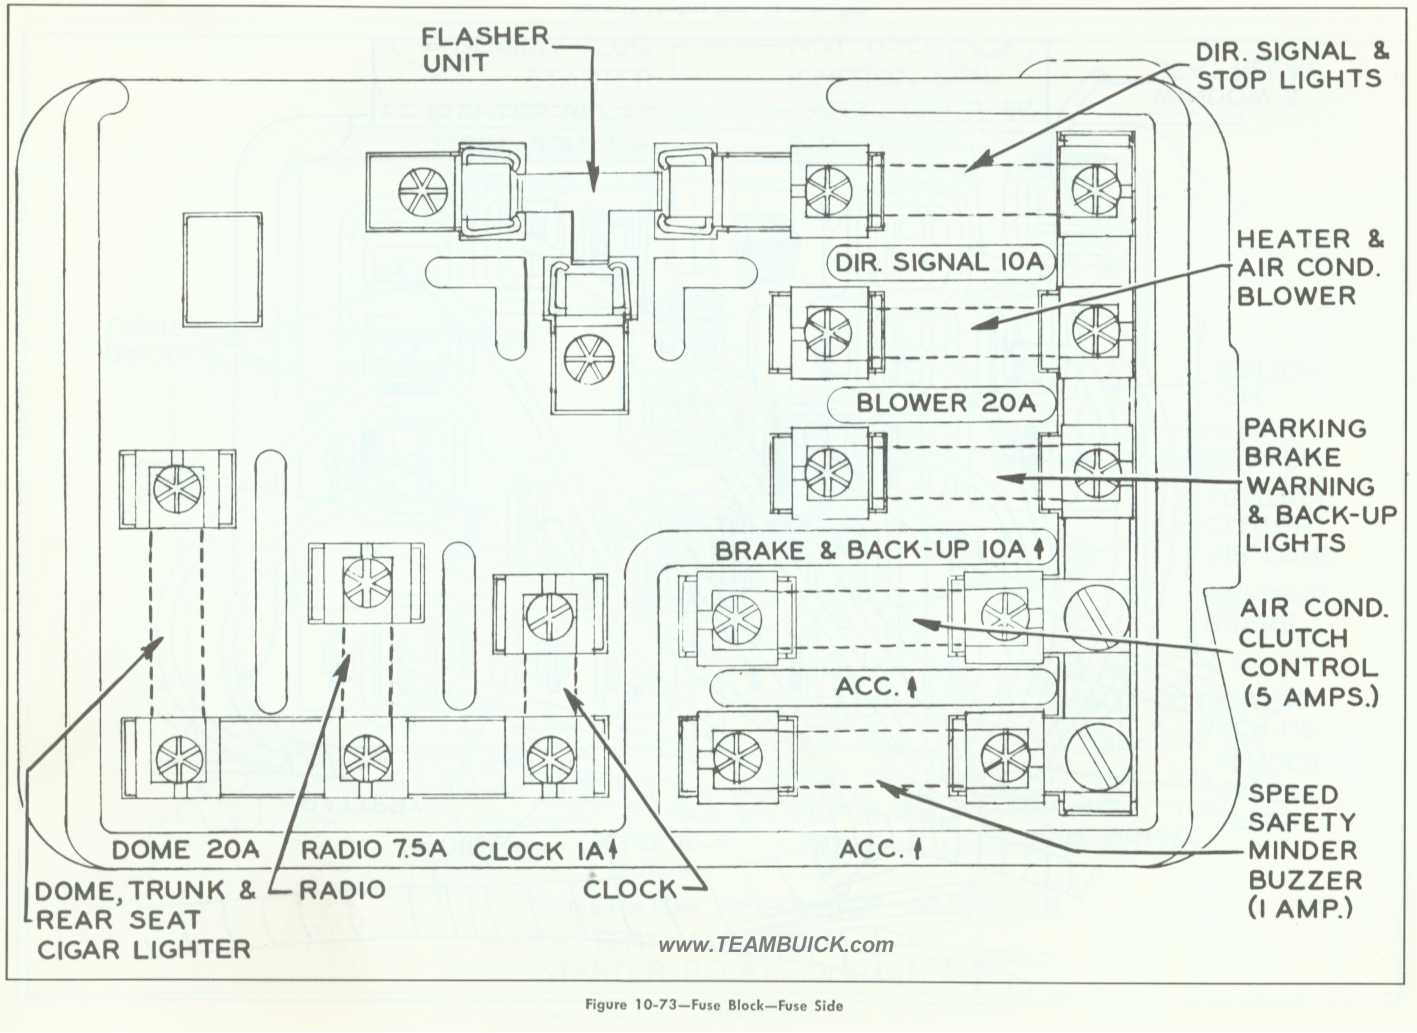 hight resolution of alternator wiring diagram 1963 buick special best wiring libraryrelated with alternator wiring diagram 1963 buick special